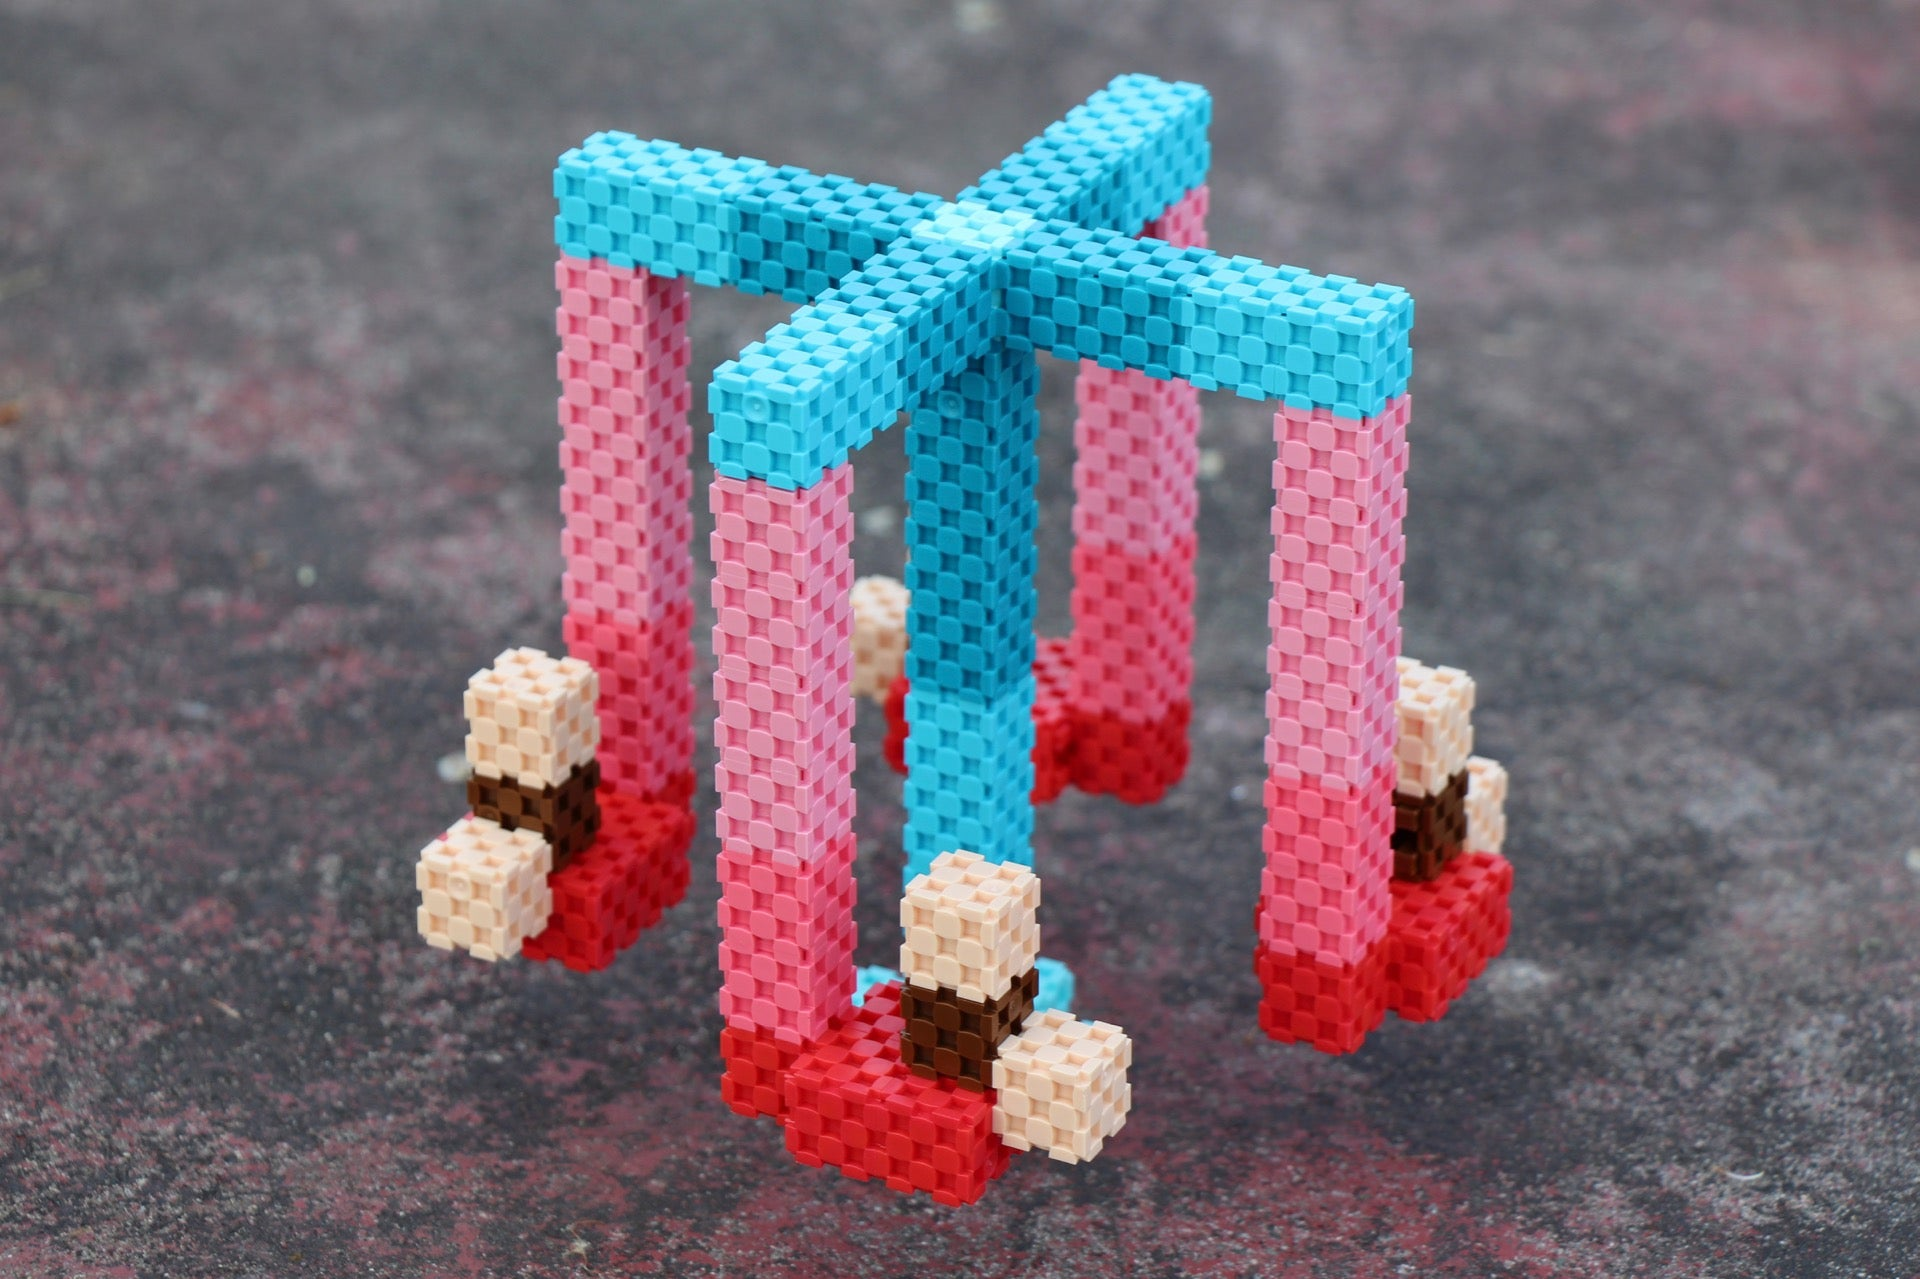 carousel made with Lini cubes